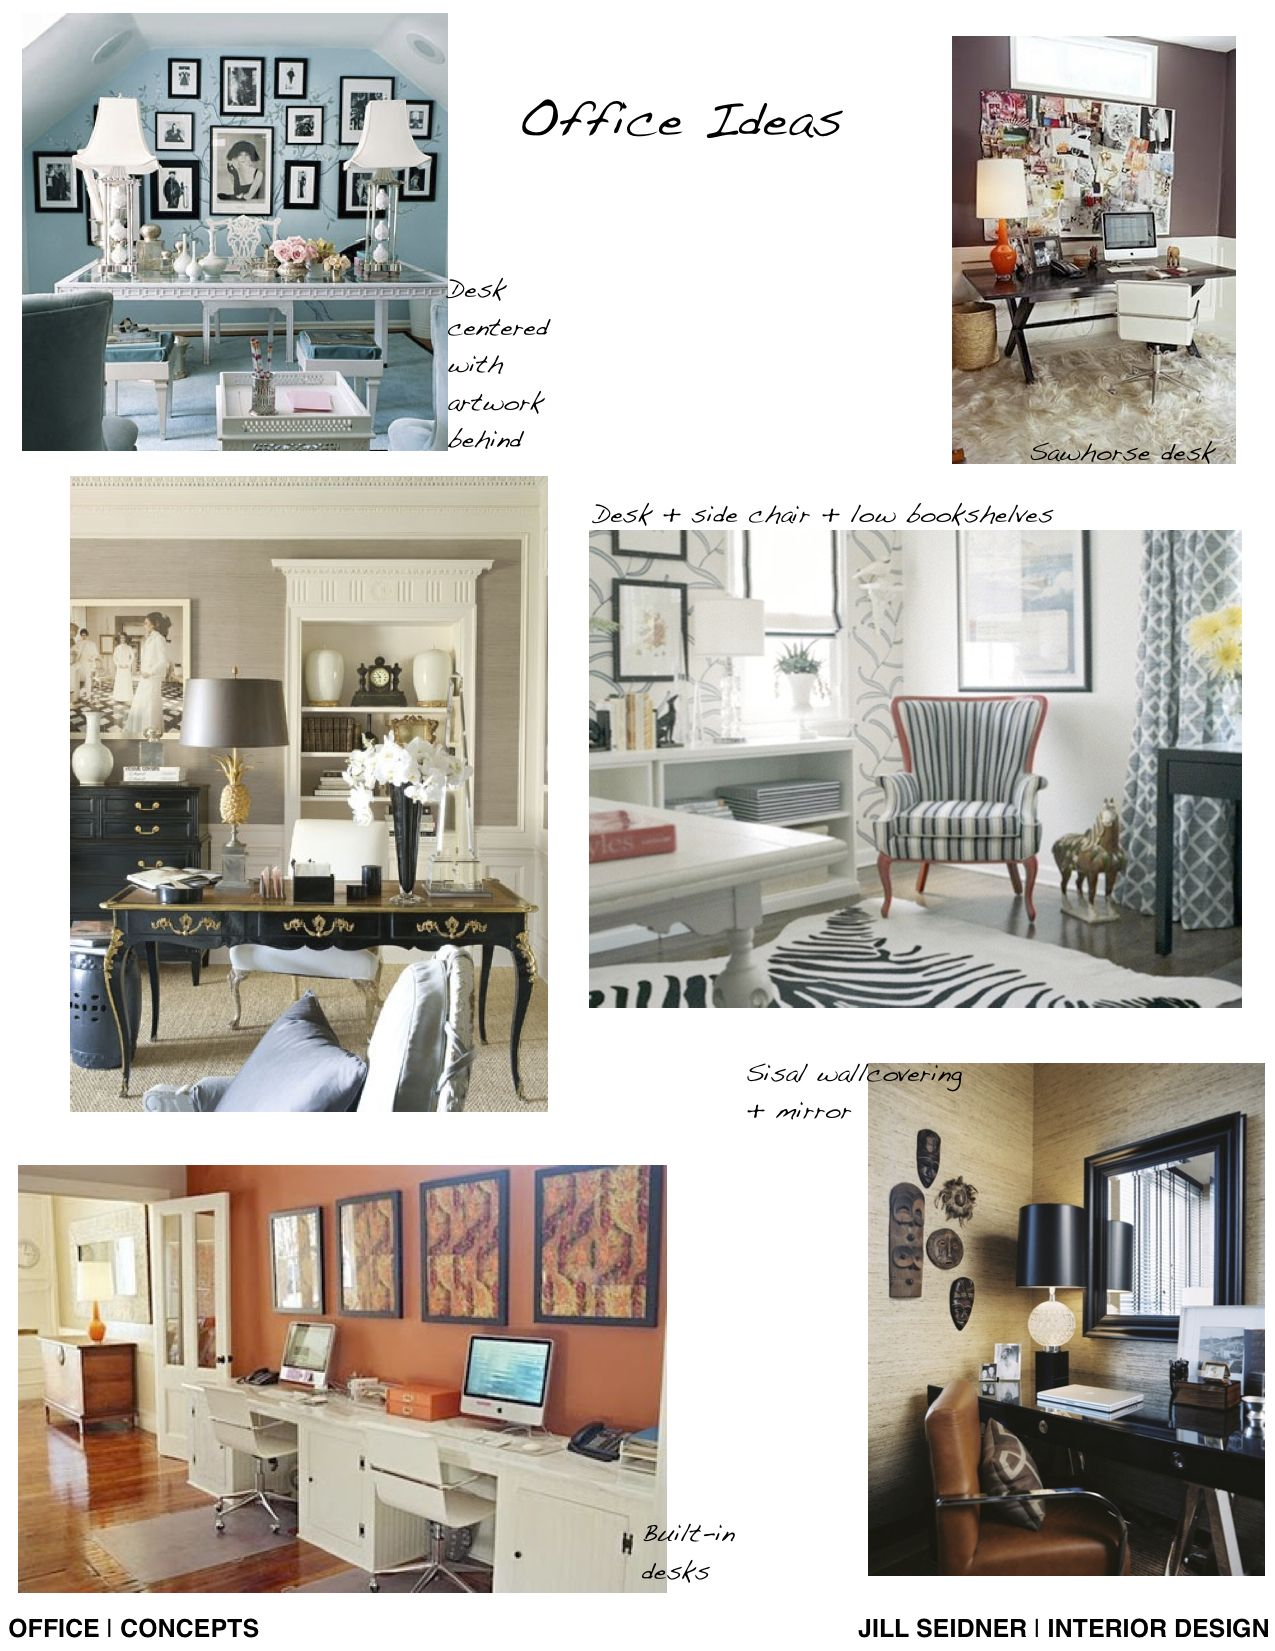 Concept board for home office. | Jill Seidner Interior Design ...